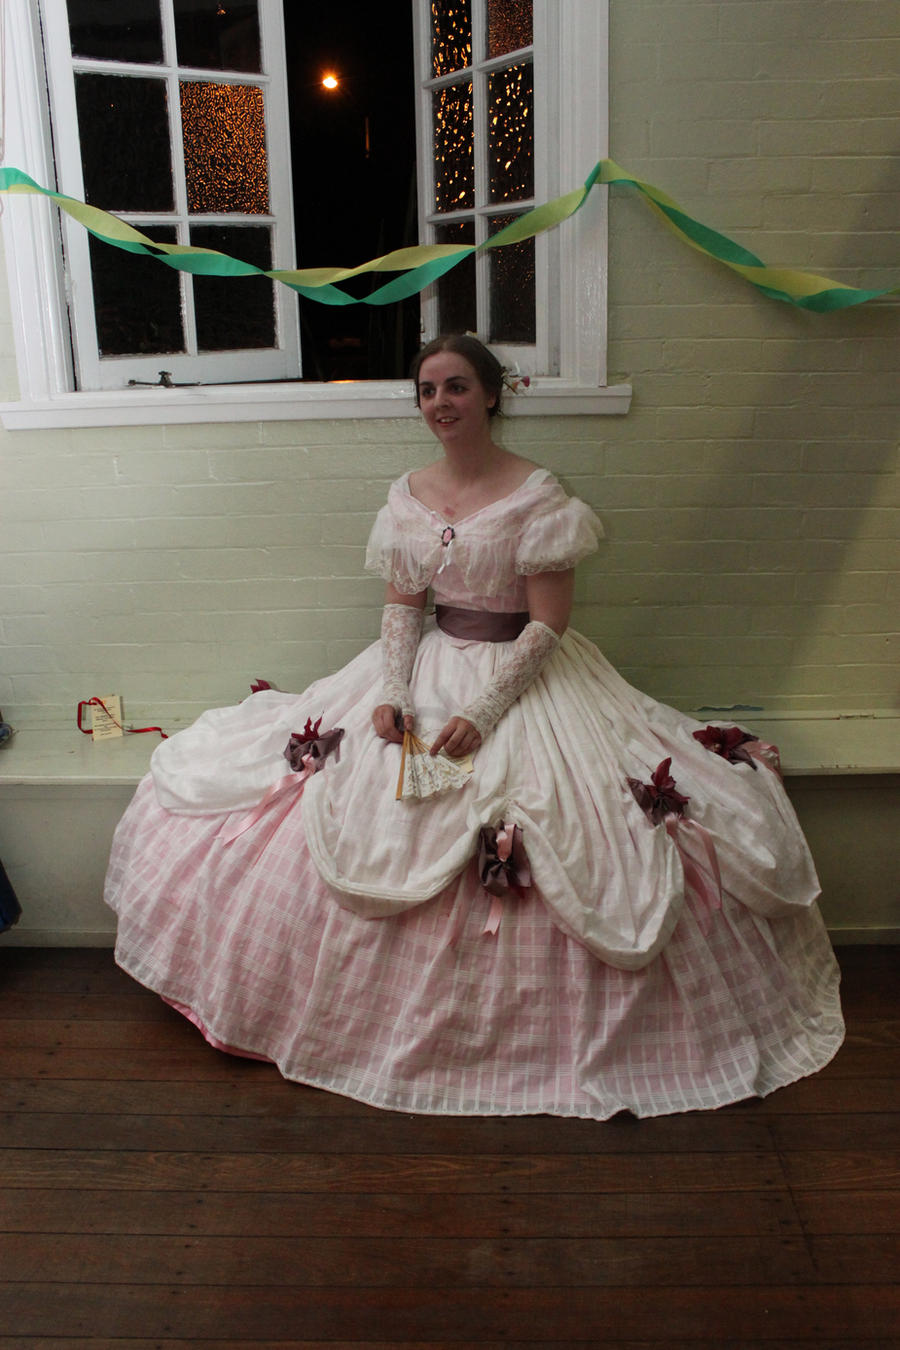 1850s Ball dress by Kathelyne